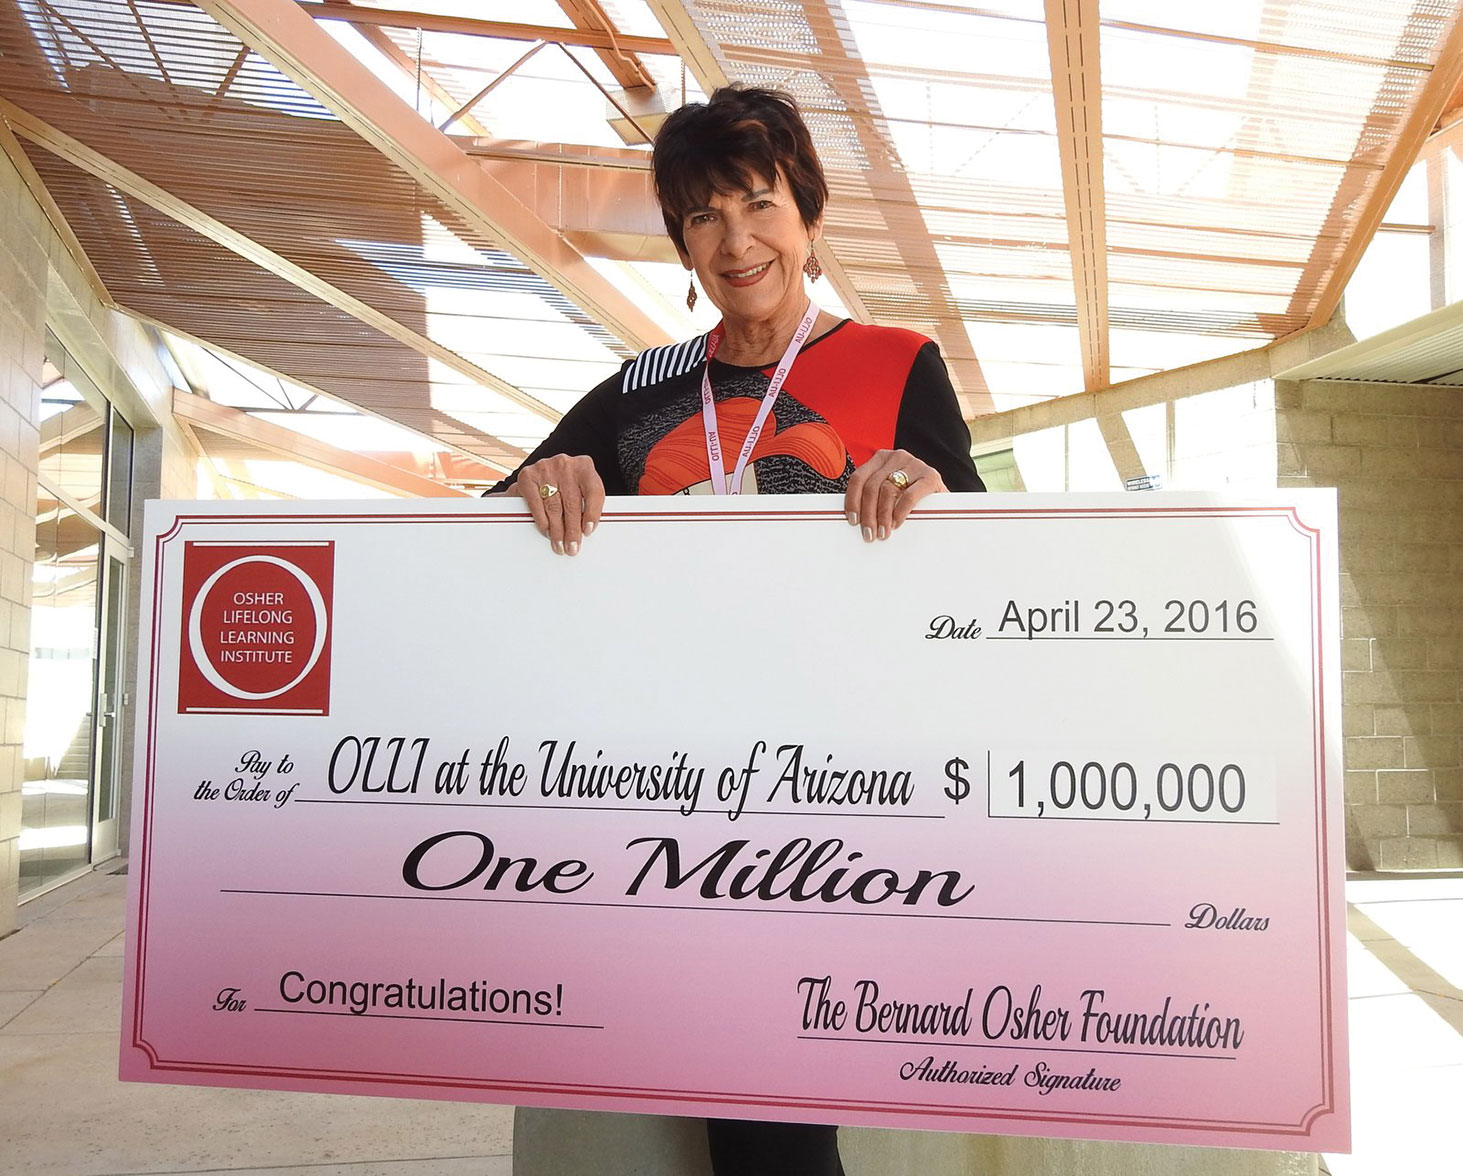 """Dr. Jana Eaton of Quail Creek accepts a million dollar endowment check from the Bernard Osher Foundation on behalf of the 1,200-member Osher Lifelong Learning Institute-University of Arizona. Eaton is president of the board of directors for OLLI-UA which maintains a """"cooperative and symbiotic relationship"""" with the Quail Creek Education Committee and holds classes in Quail Creek as well as PCC and the Casa Community Center in Green Valley. OLLI Board Vice President Lois Connell (not pictured) is also a Quail Creek resident. There are over 500 OLLI members in the Green Valley area including almost 200 Quail Creek residents; photo courtesy of Ed Freedman."""